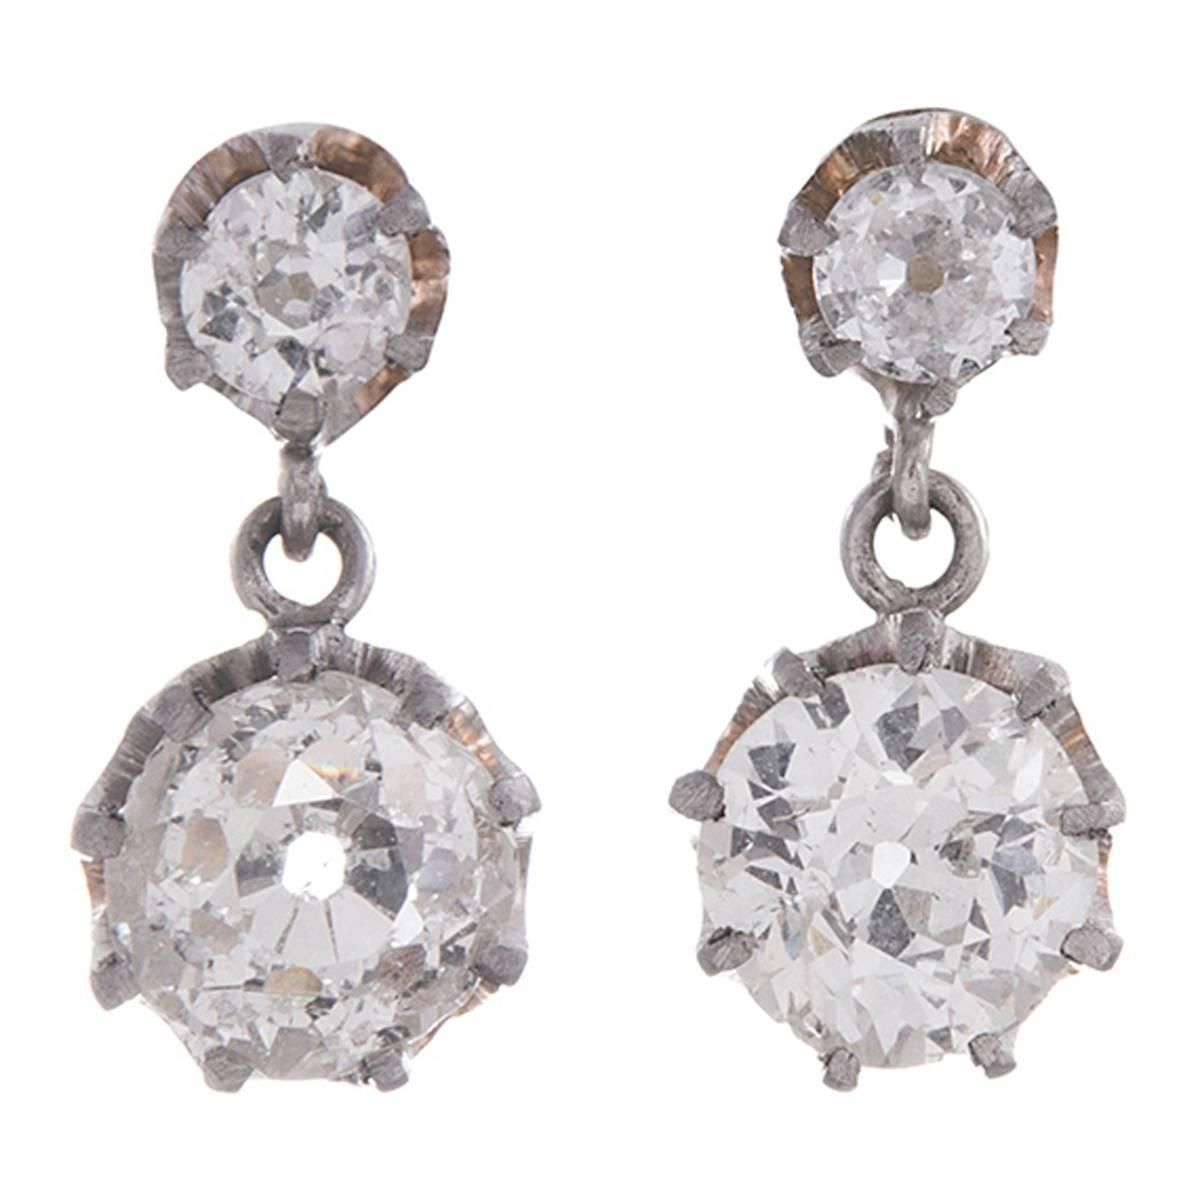 Double Old European Cut Diamond Drop Earrings | From a unique collection of vintage drop earrings at https://www.1stdibs.com/jewelry/earrings/drop-earrings/